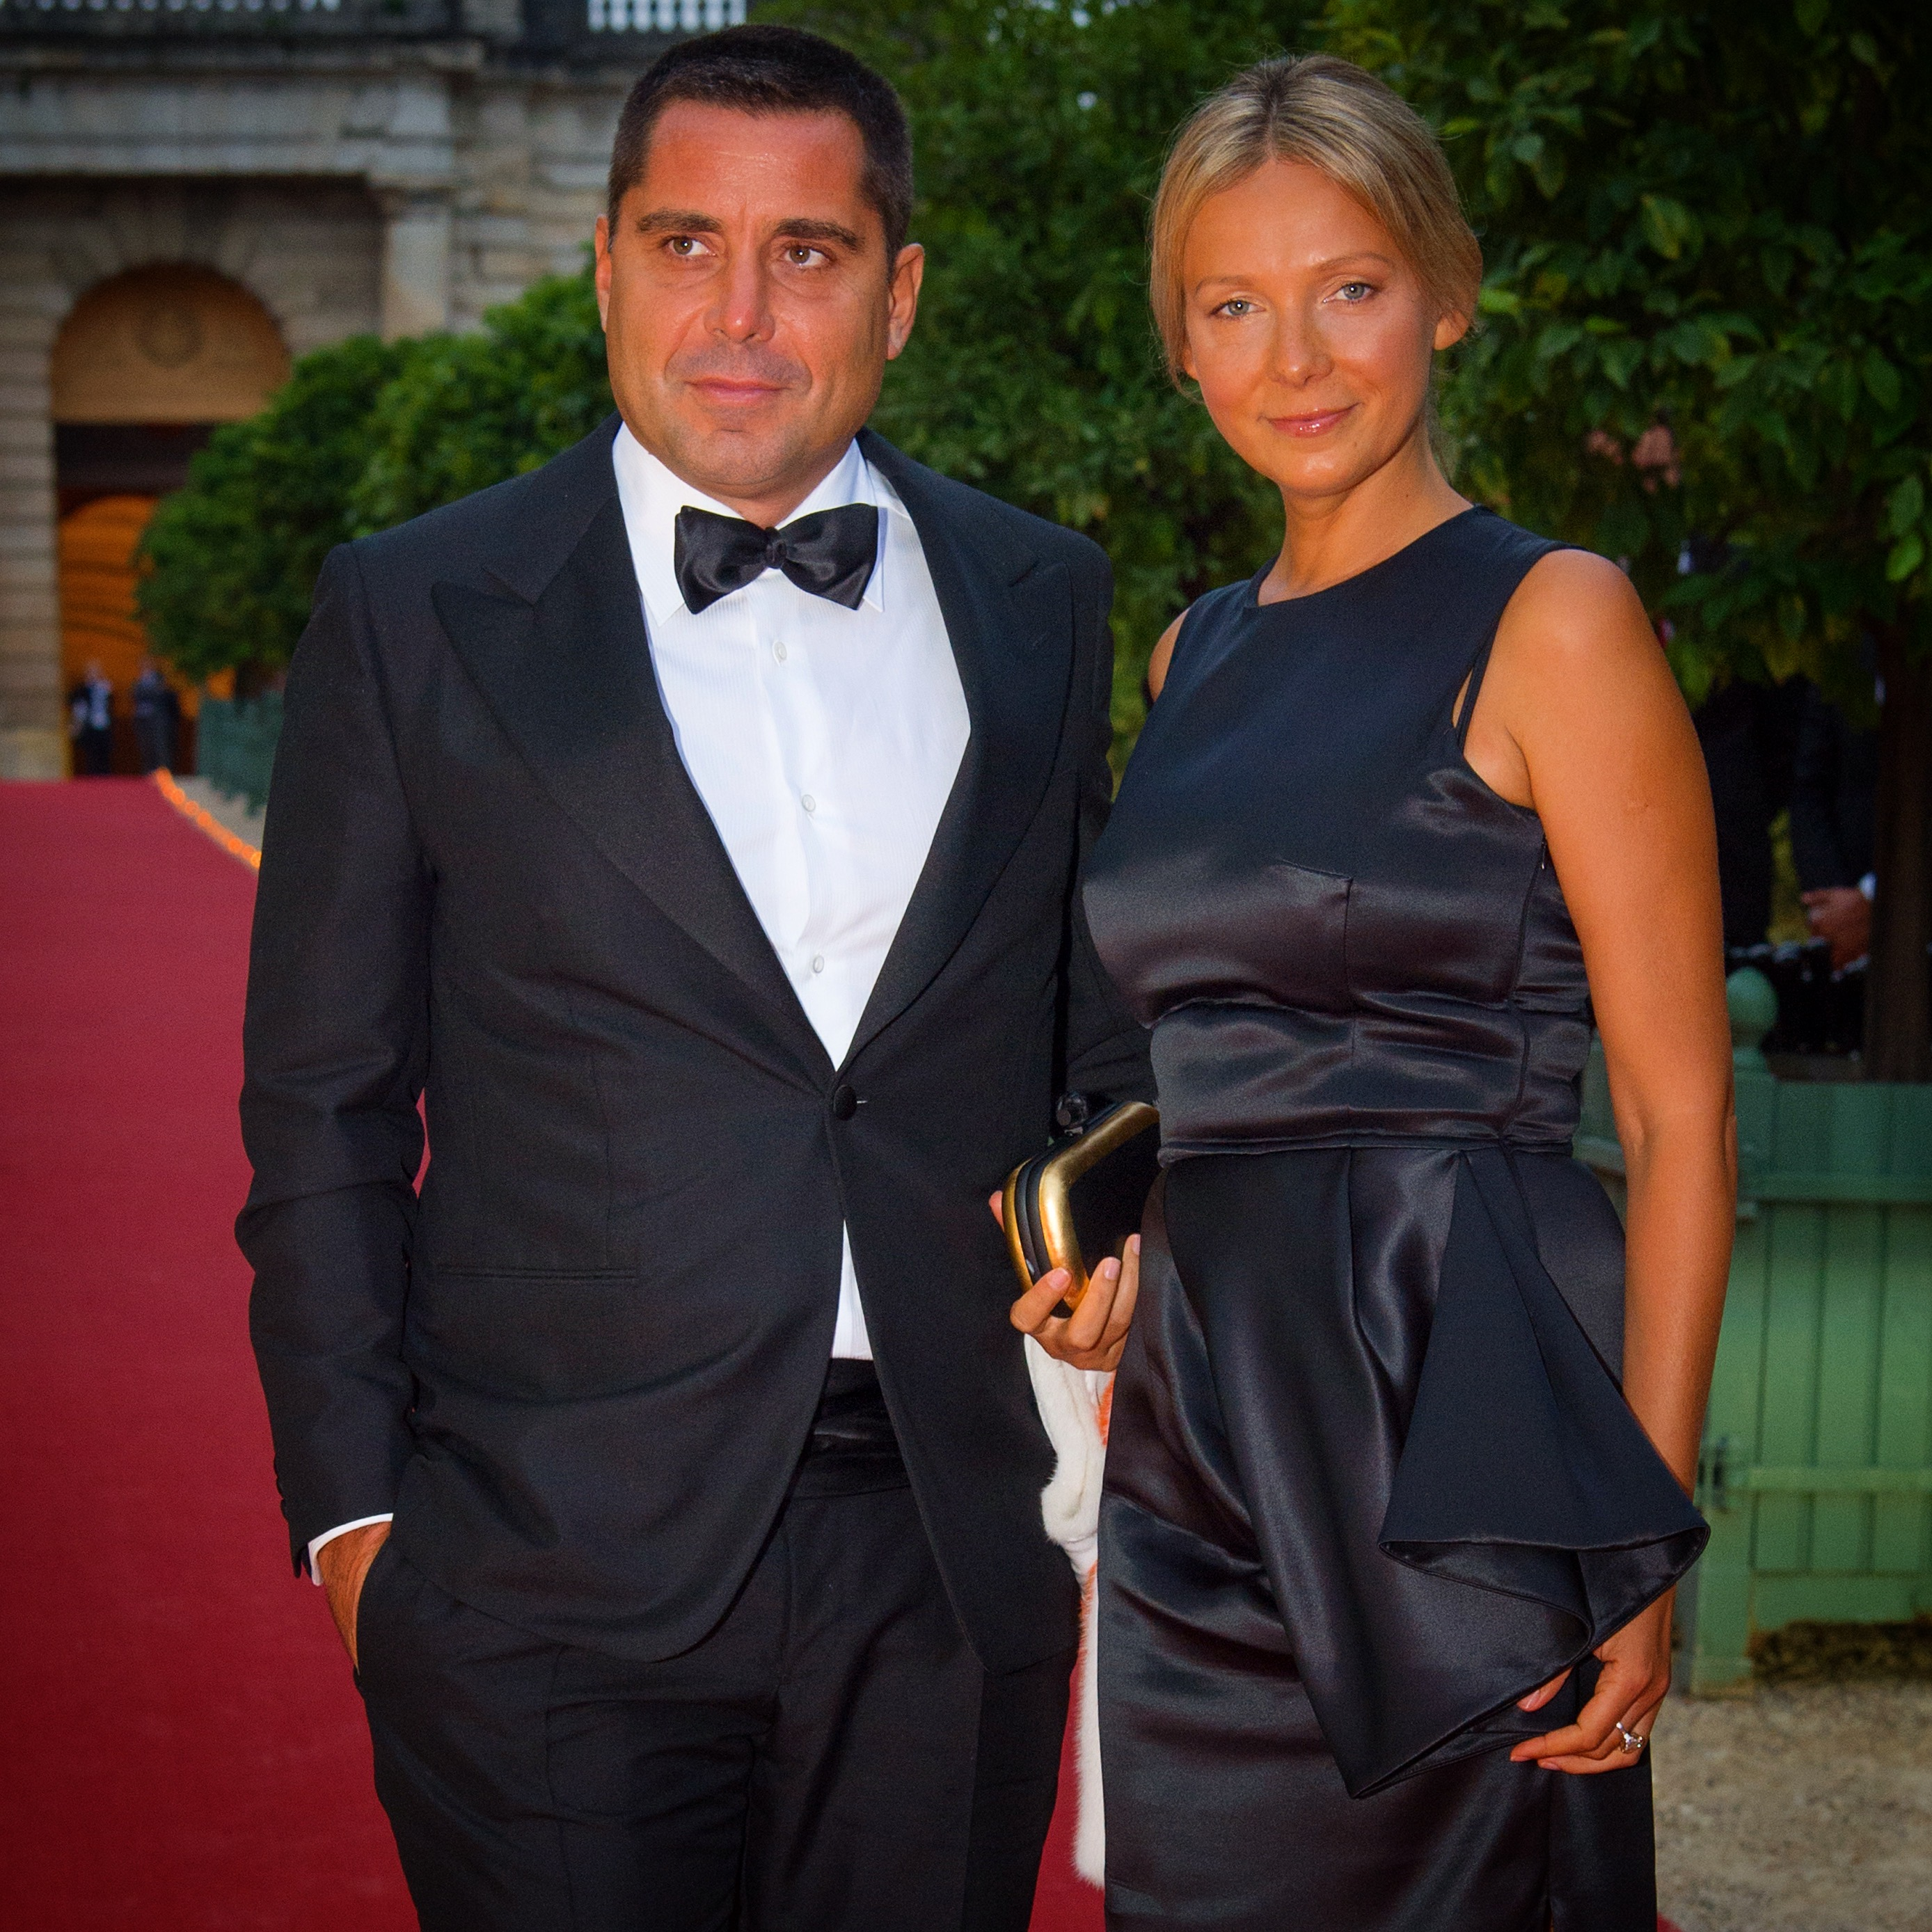 Riccardo Silva with his wife Tatyana Silva